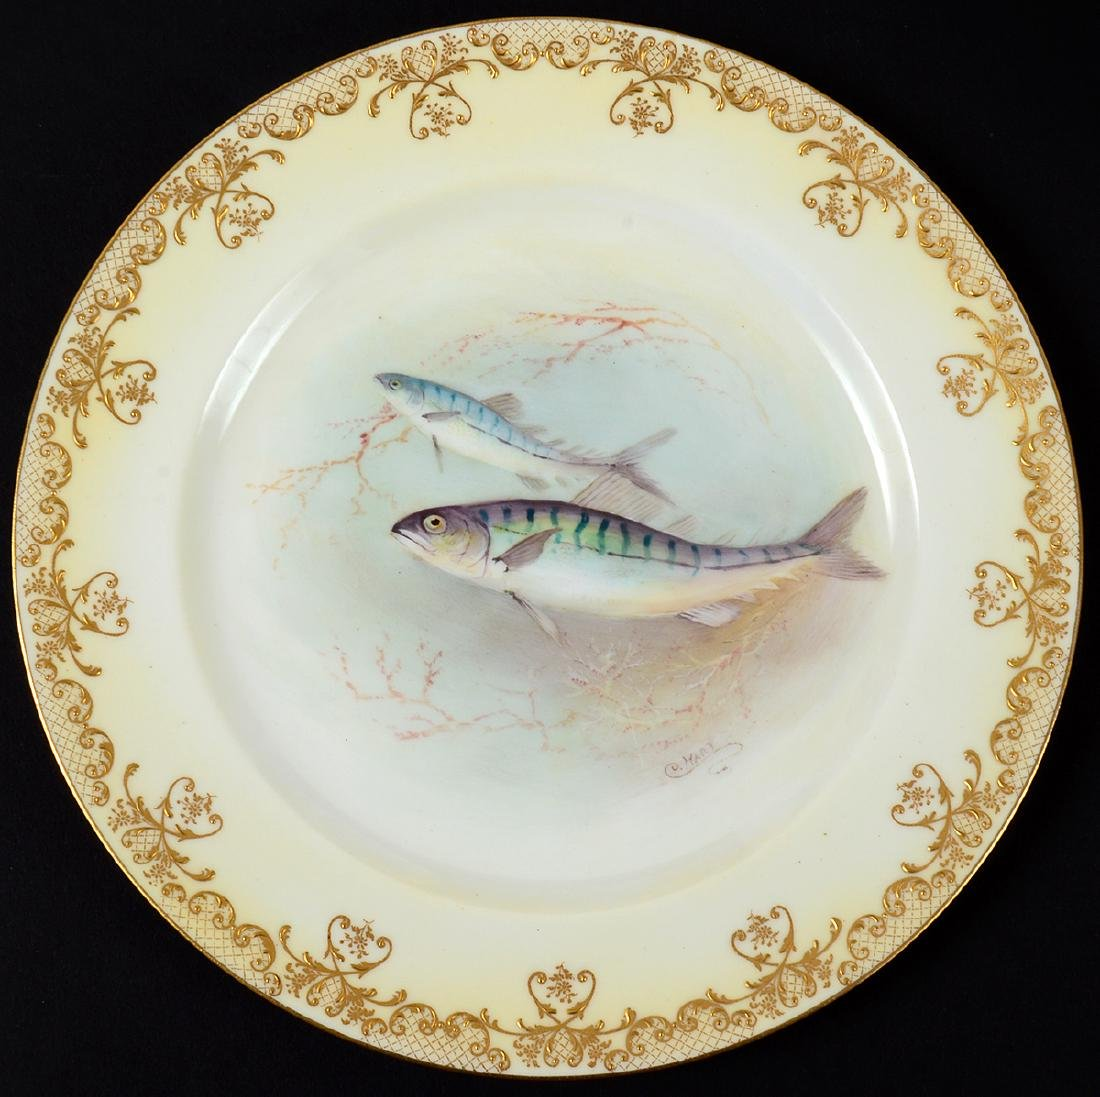 SET OF TEN ROYAL DOULTON PORCELAIN FISH PLATES - 2